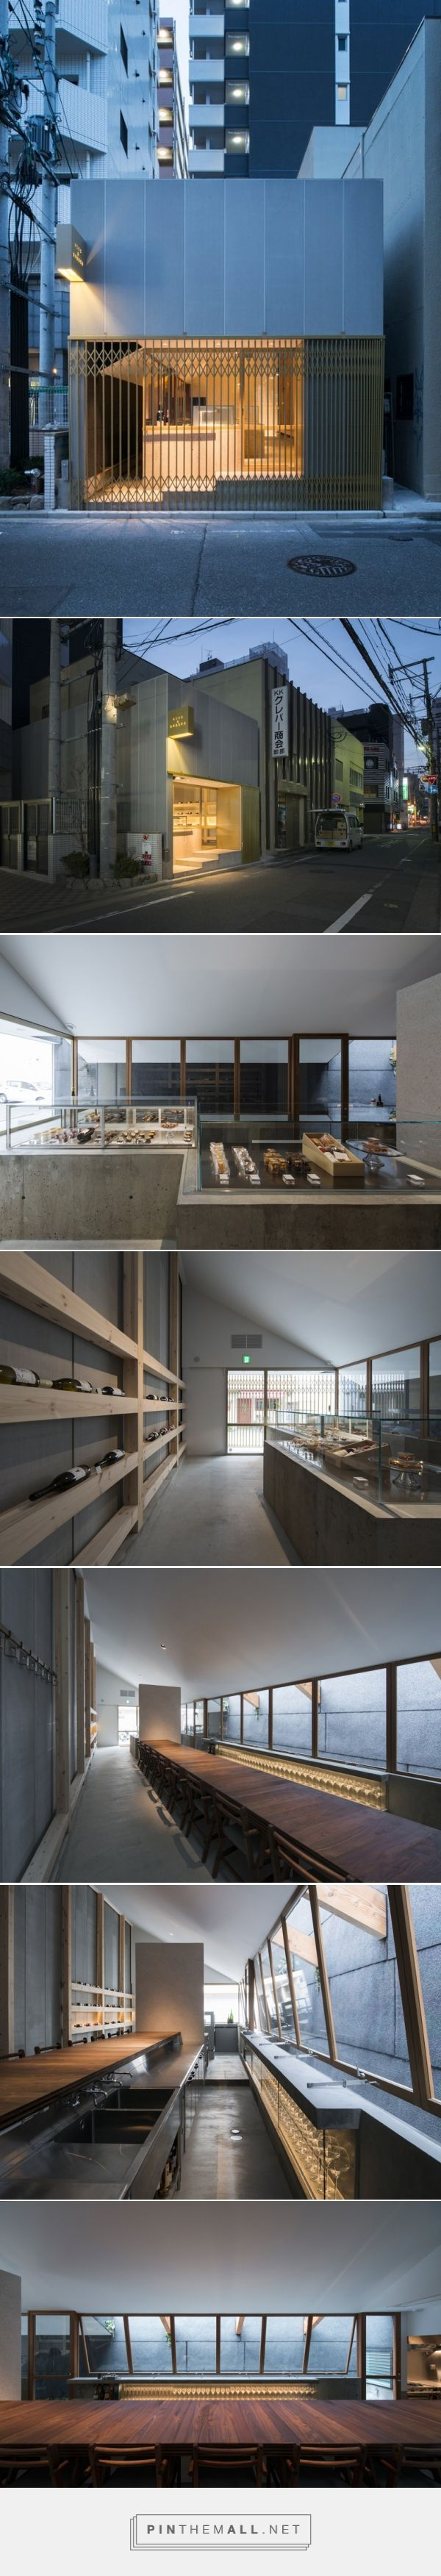 Tsumons | A Wine & Sweets Shop Grows in Fukuoka | Spoon & Tamago - created via http://pinthemall.net